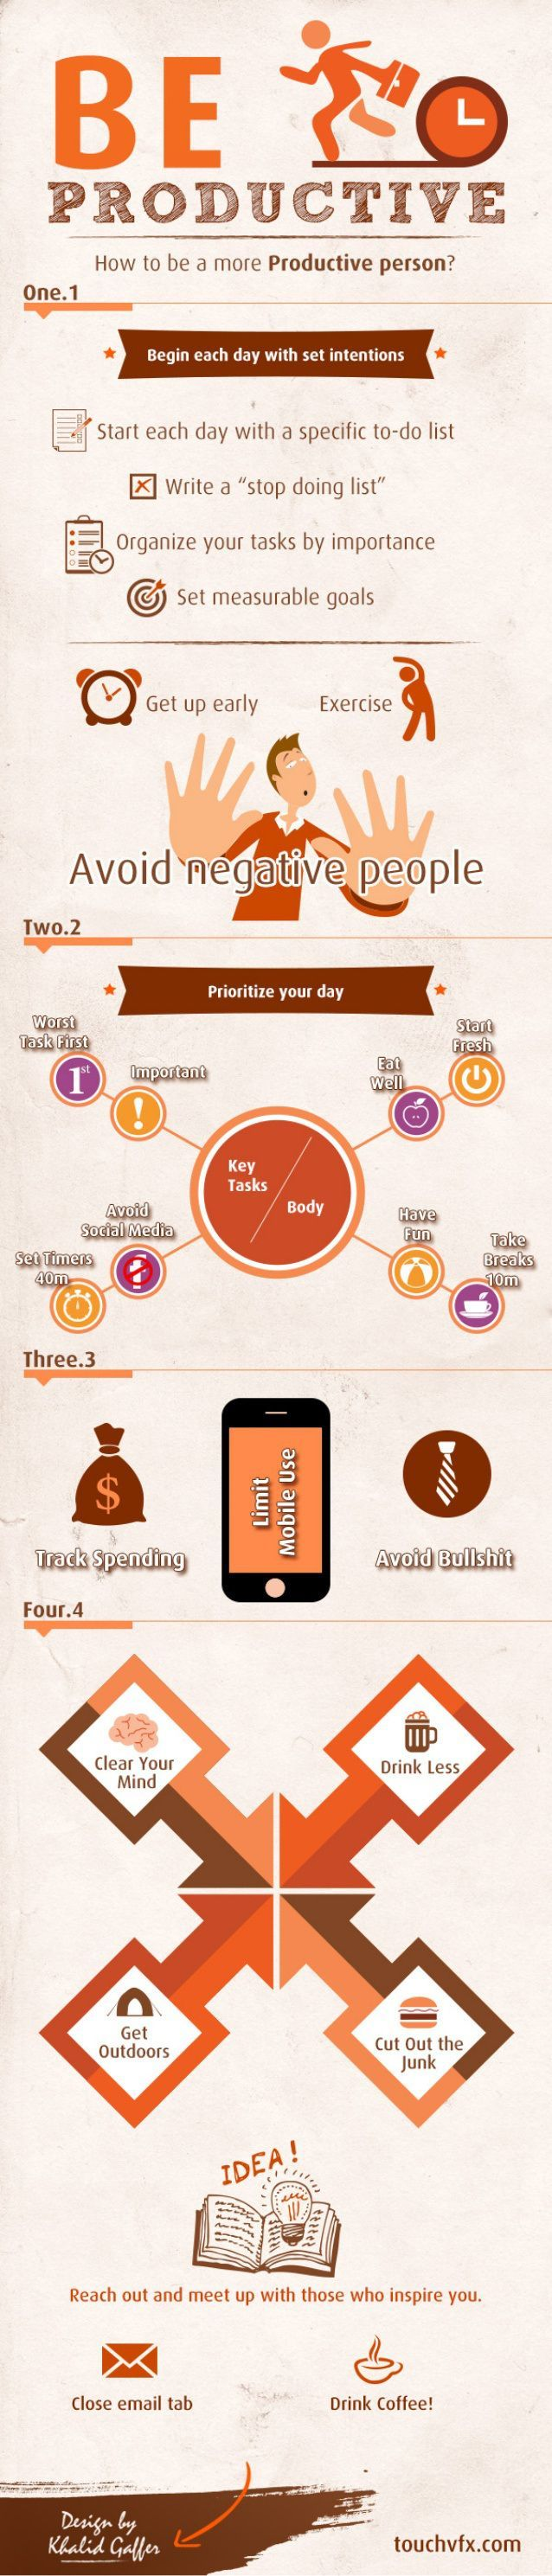 How to be a more productive person #infographic